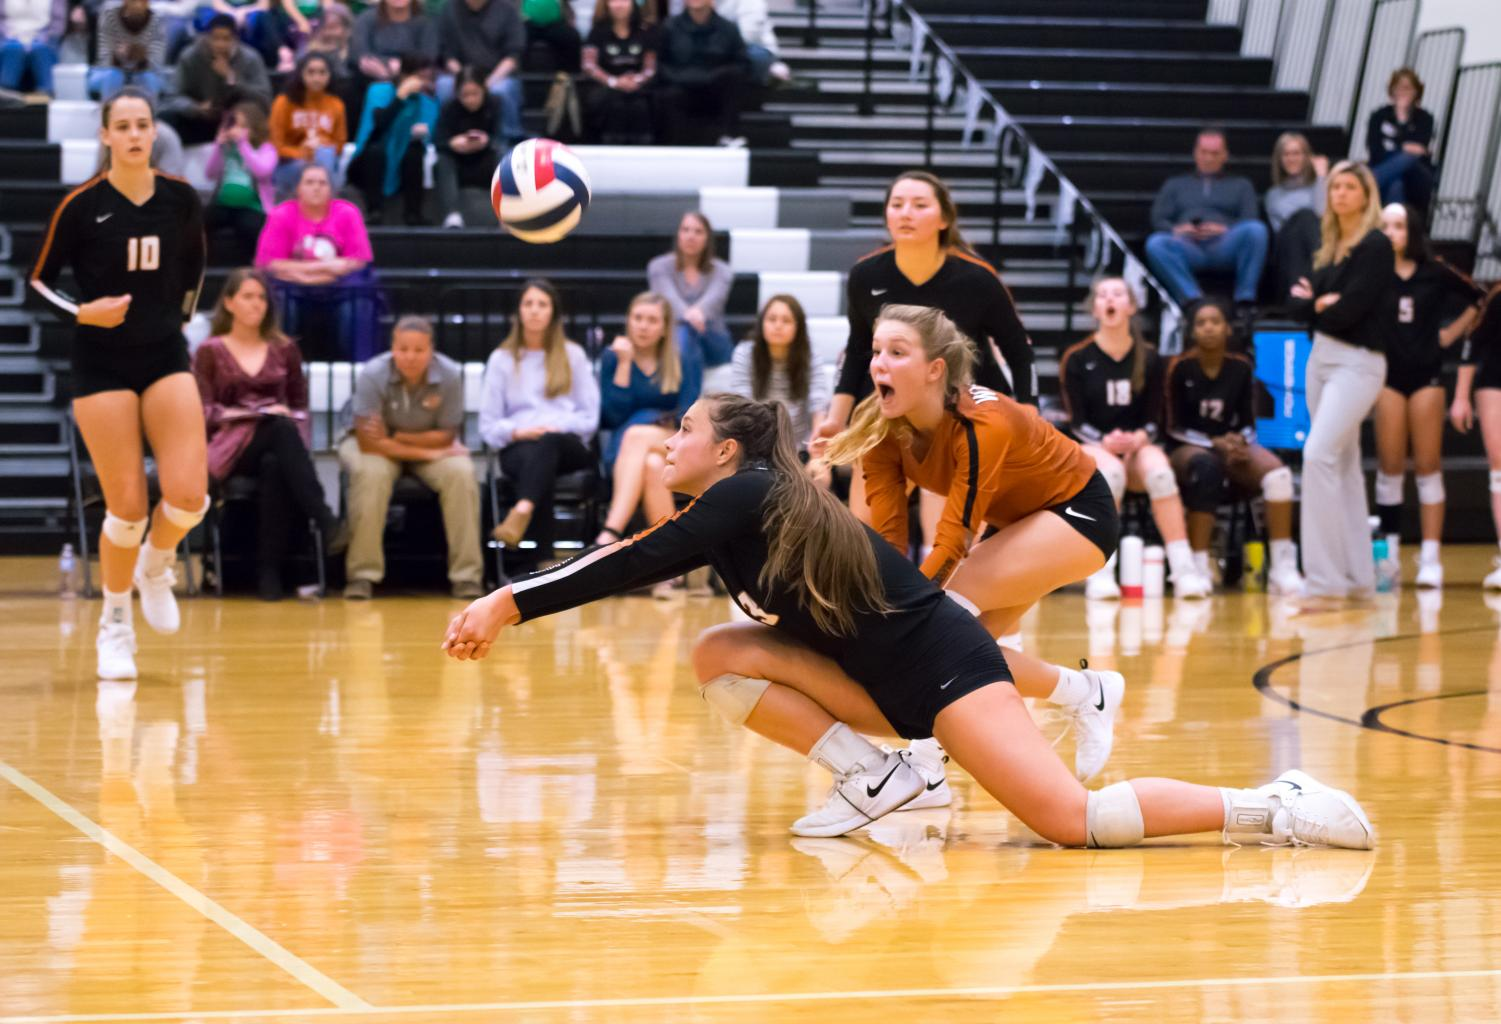 Returning+the+Lion%27s+serve%2C+Abby+Gregorczyk+%2721+gets+down+low+to+bump+the+ball.+Despite+the+winning+point%2C+the+Lady+Warriors+could+not+pull+ahead+in+the+set.